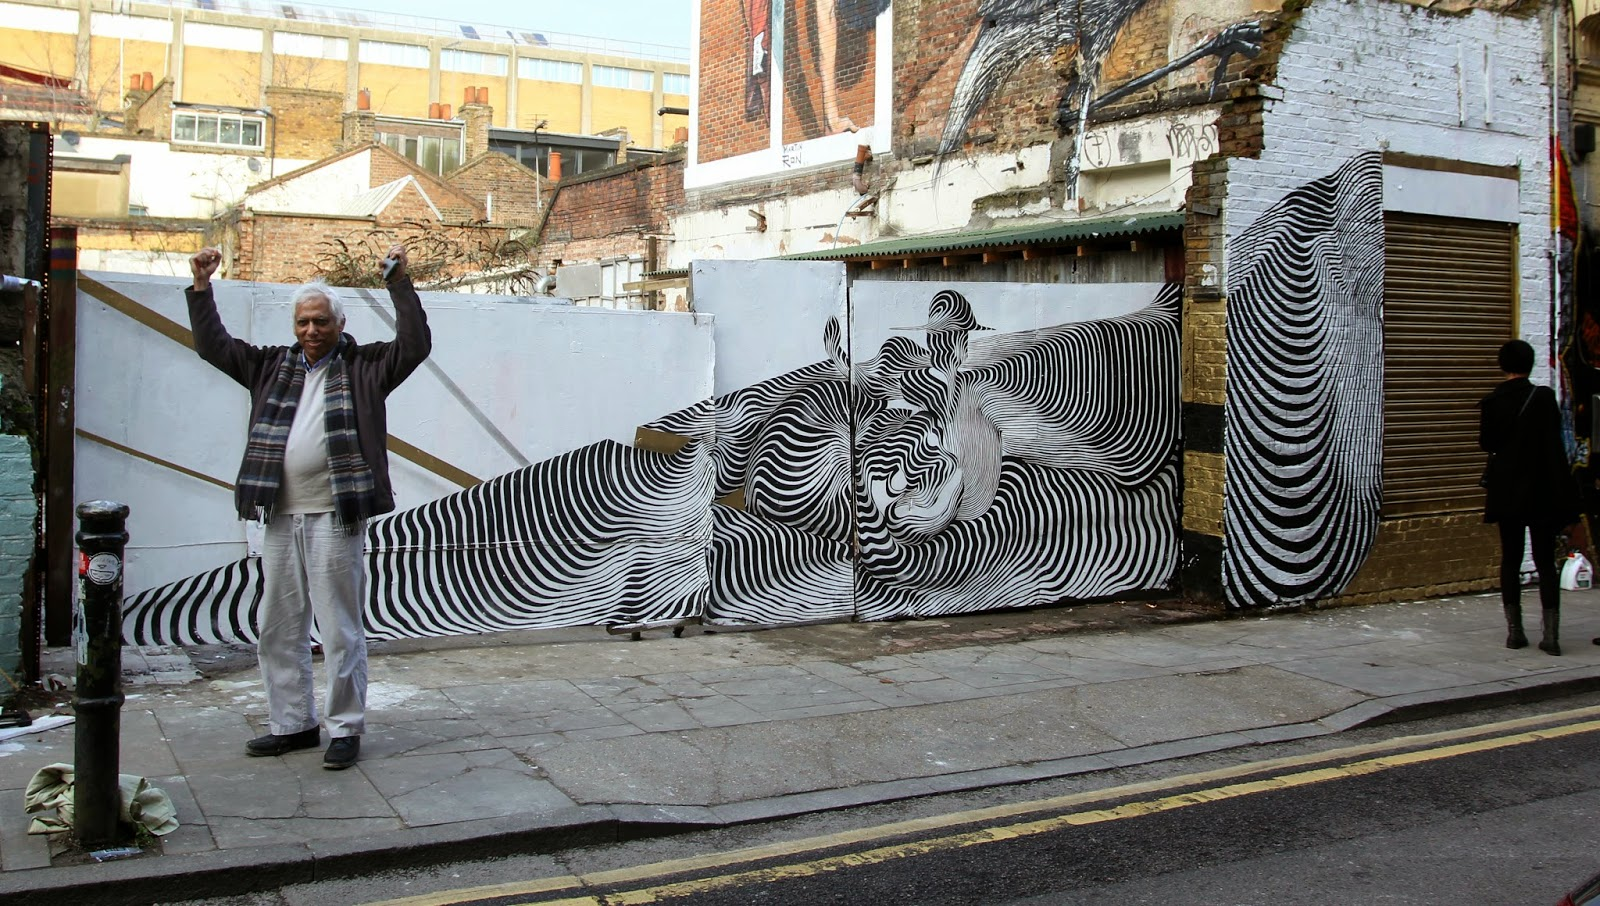 Armed with his paintbrushes, the Italian street artist braved the cold weather to paint some of his signature abstract imagery in East London. 1